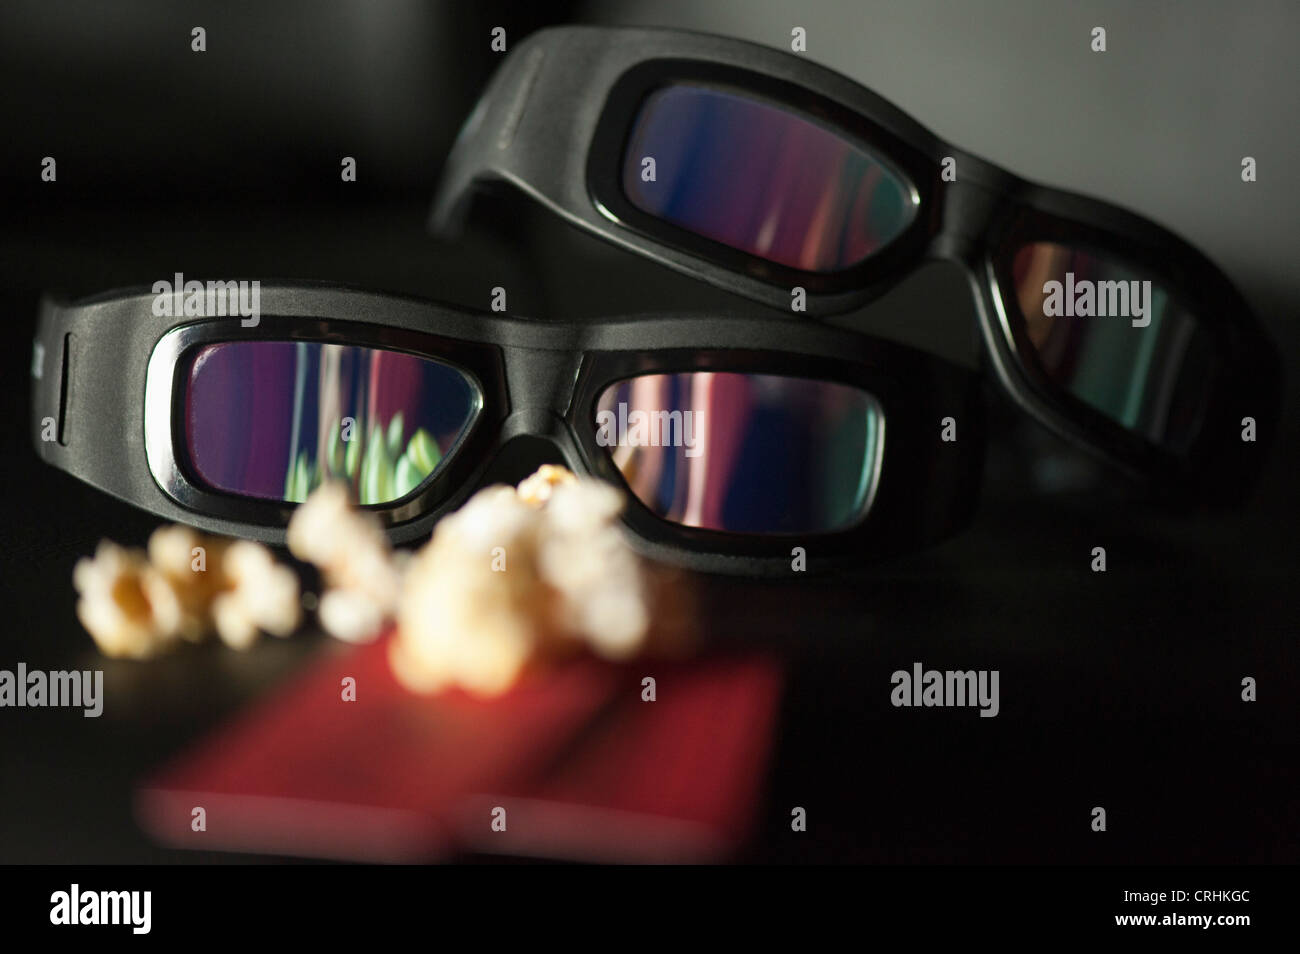 3-d-Brille Stockbild